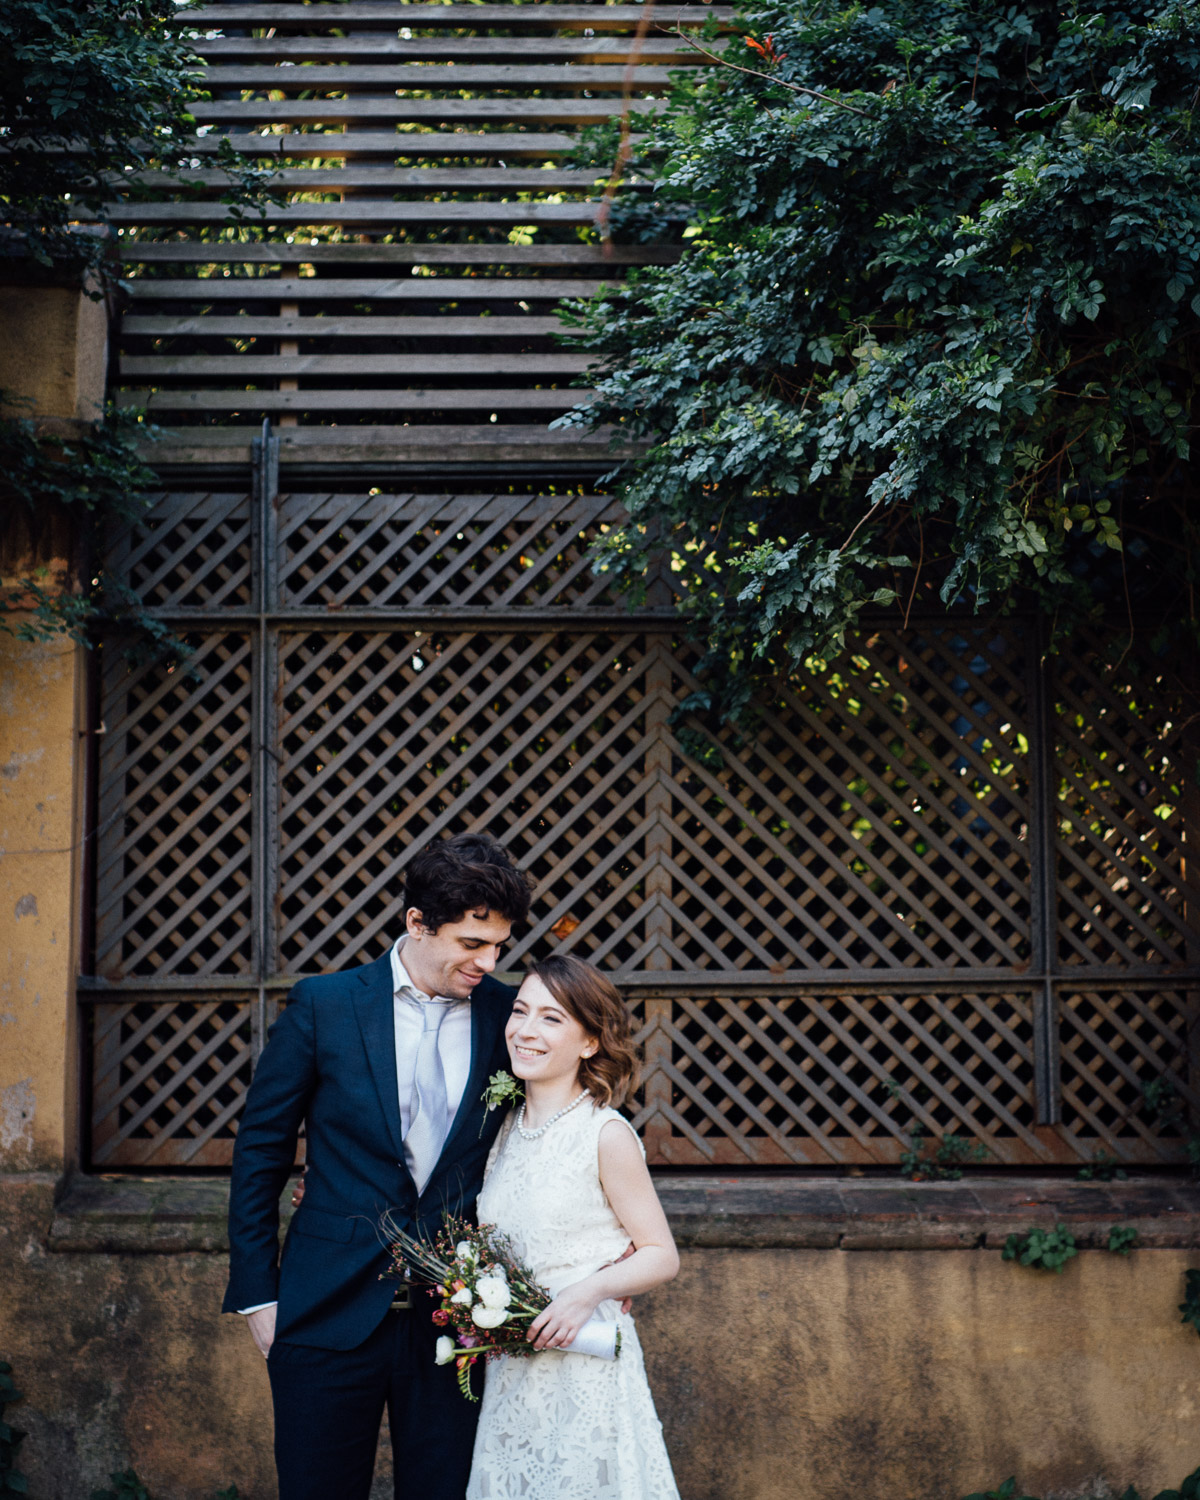 BARCELONA-CREATIVE-WEDDING Robert + Alyssa | Barcelona Elopement Photographer